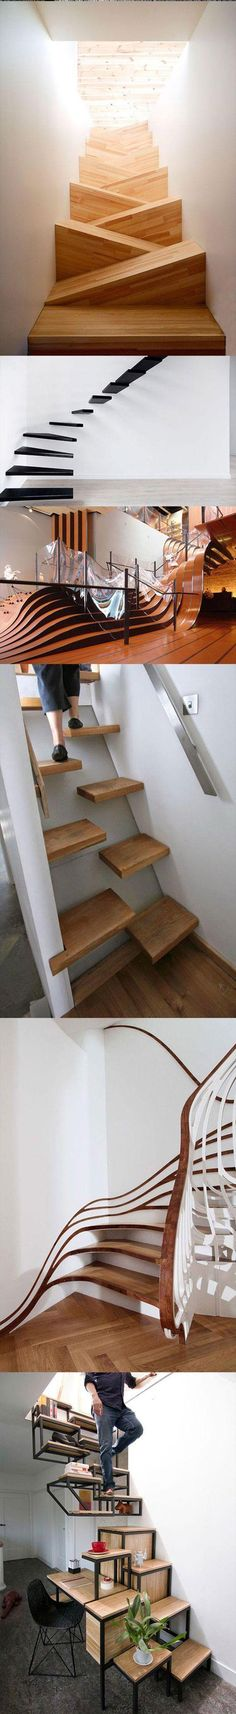 Amazing Stairs Designs - Let's turn that frown upside down !